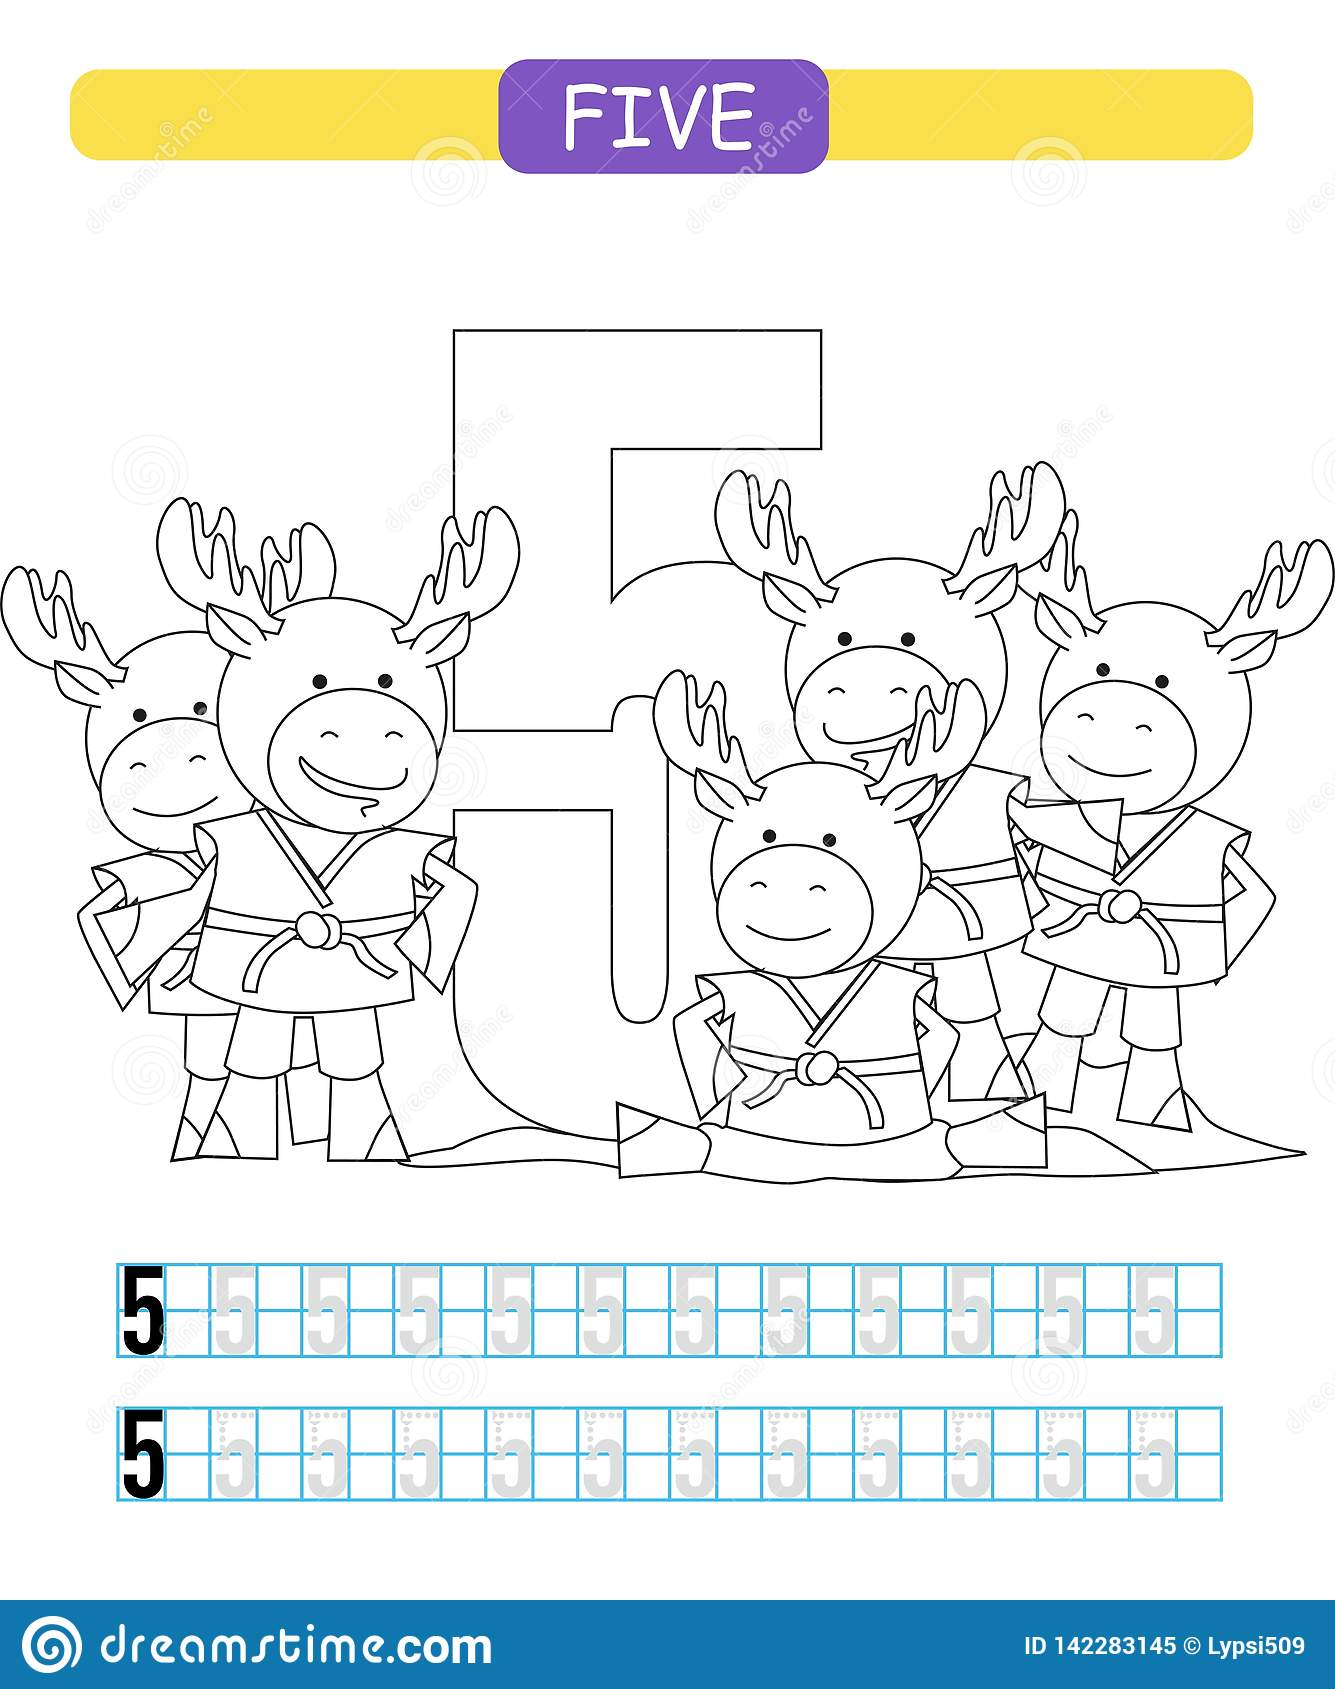 Five Learning Number 5 Coloring Printable Worksheet For